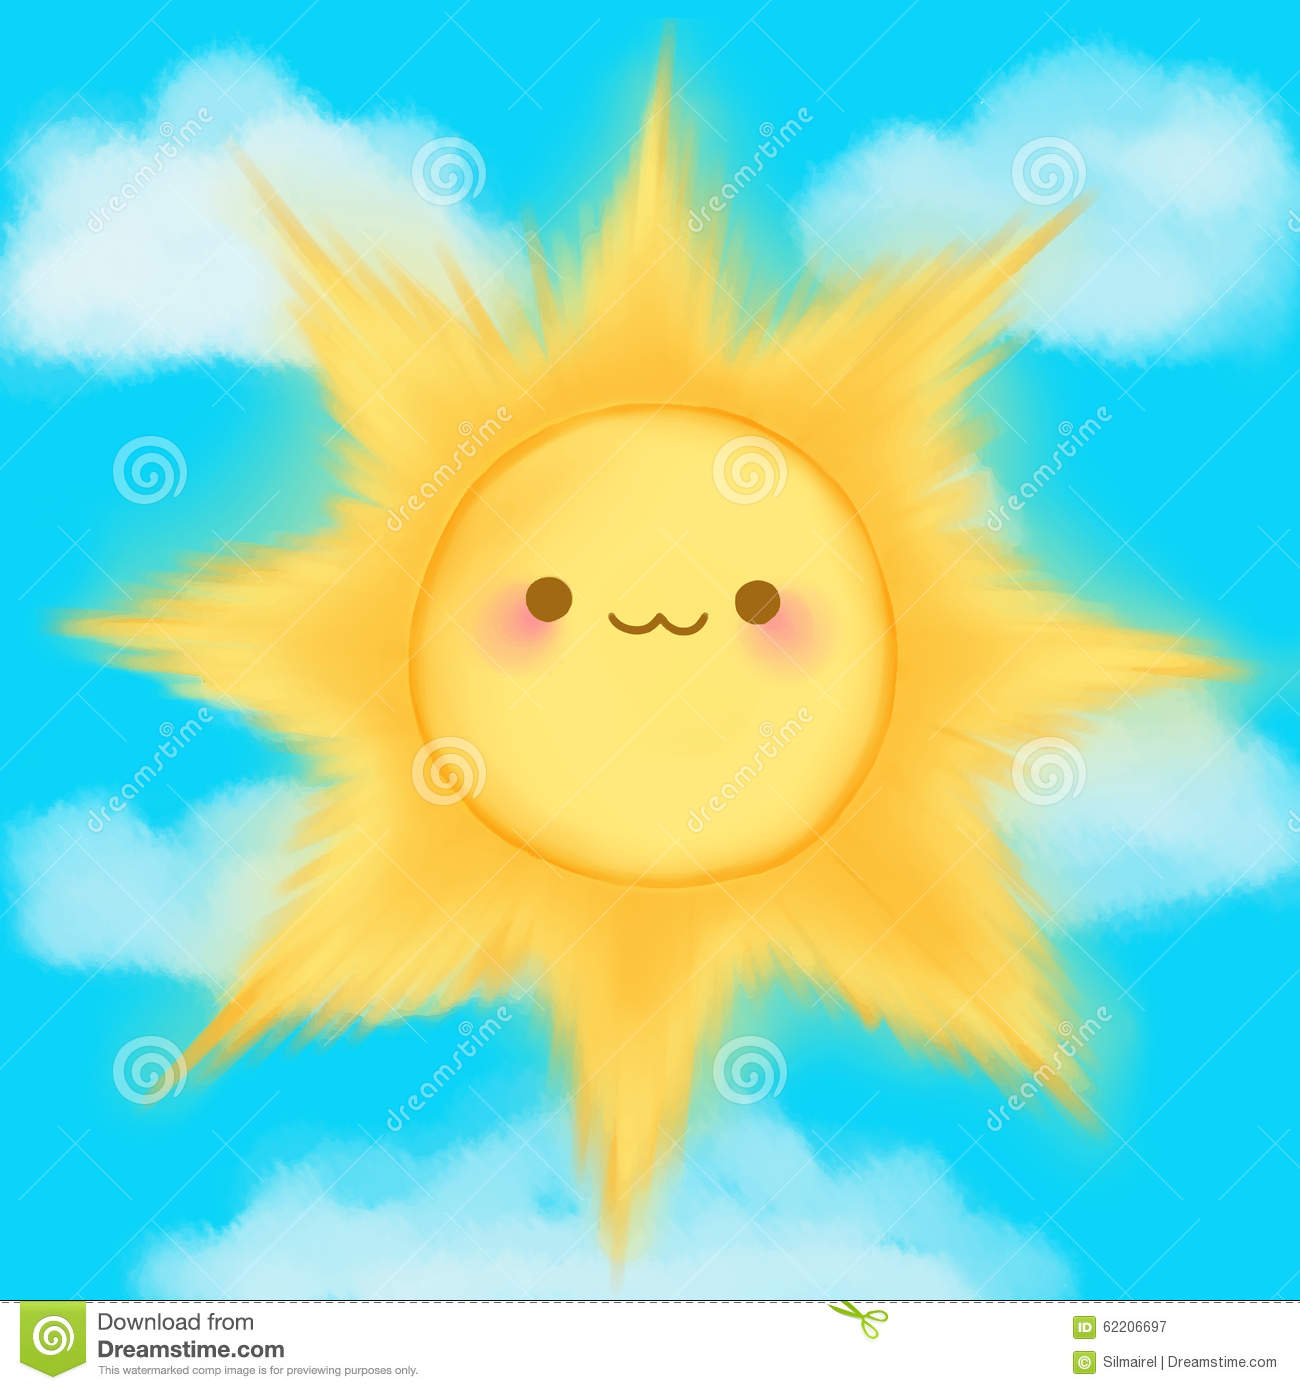 Cute Cartoon Smiling Sun Clouds Sky Kawaii Anime Manga Stock ...